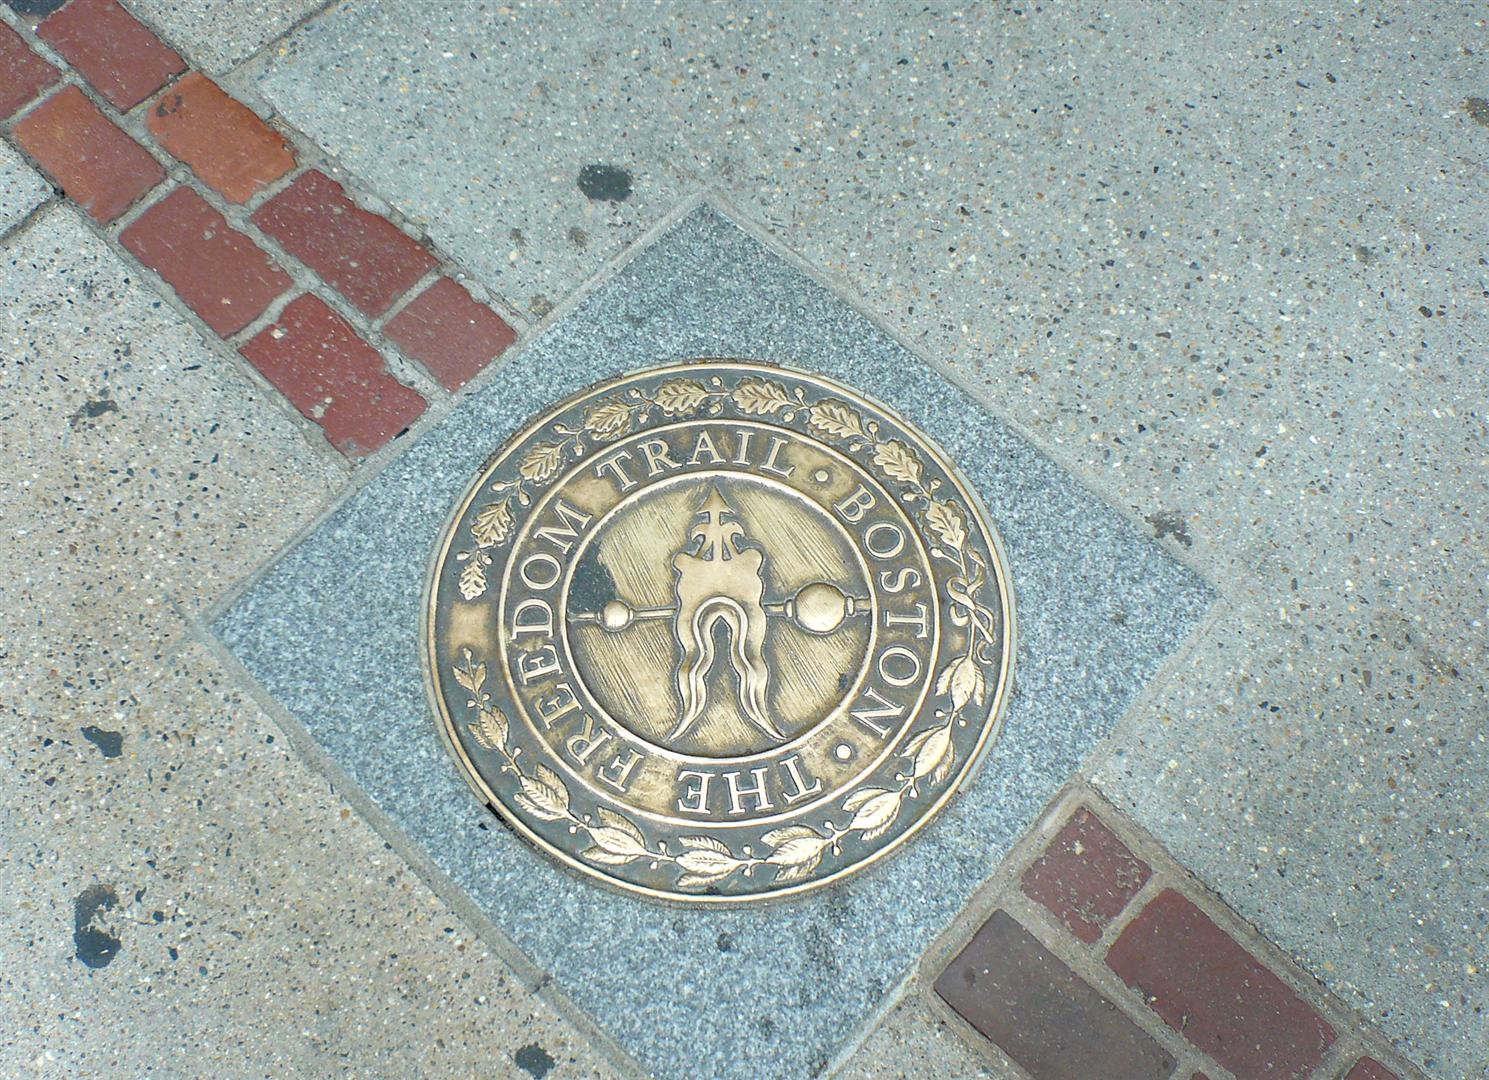 292 Freedom Trail Marker.jpg